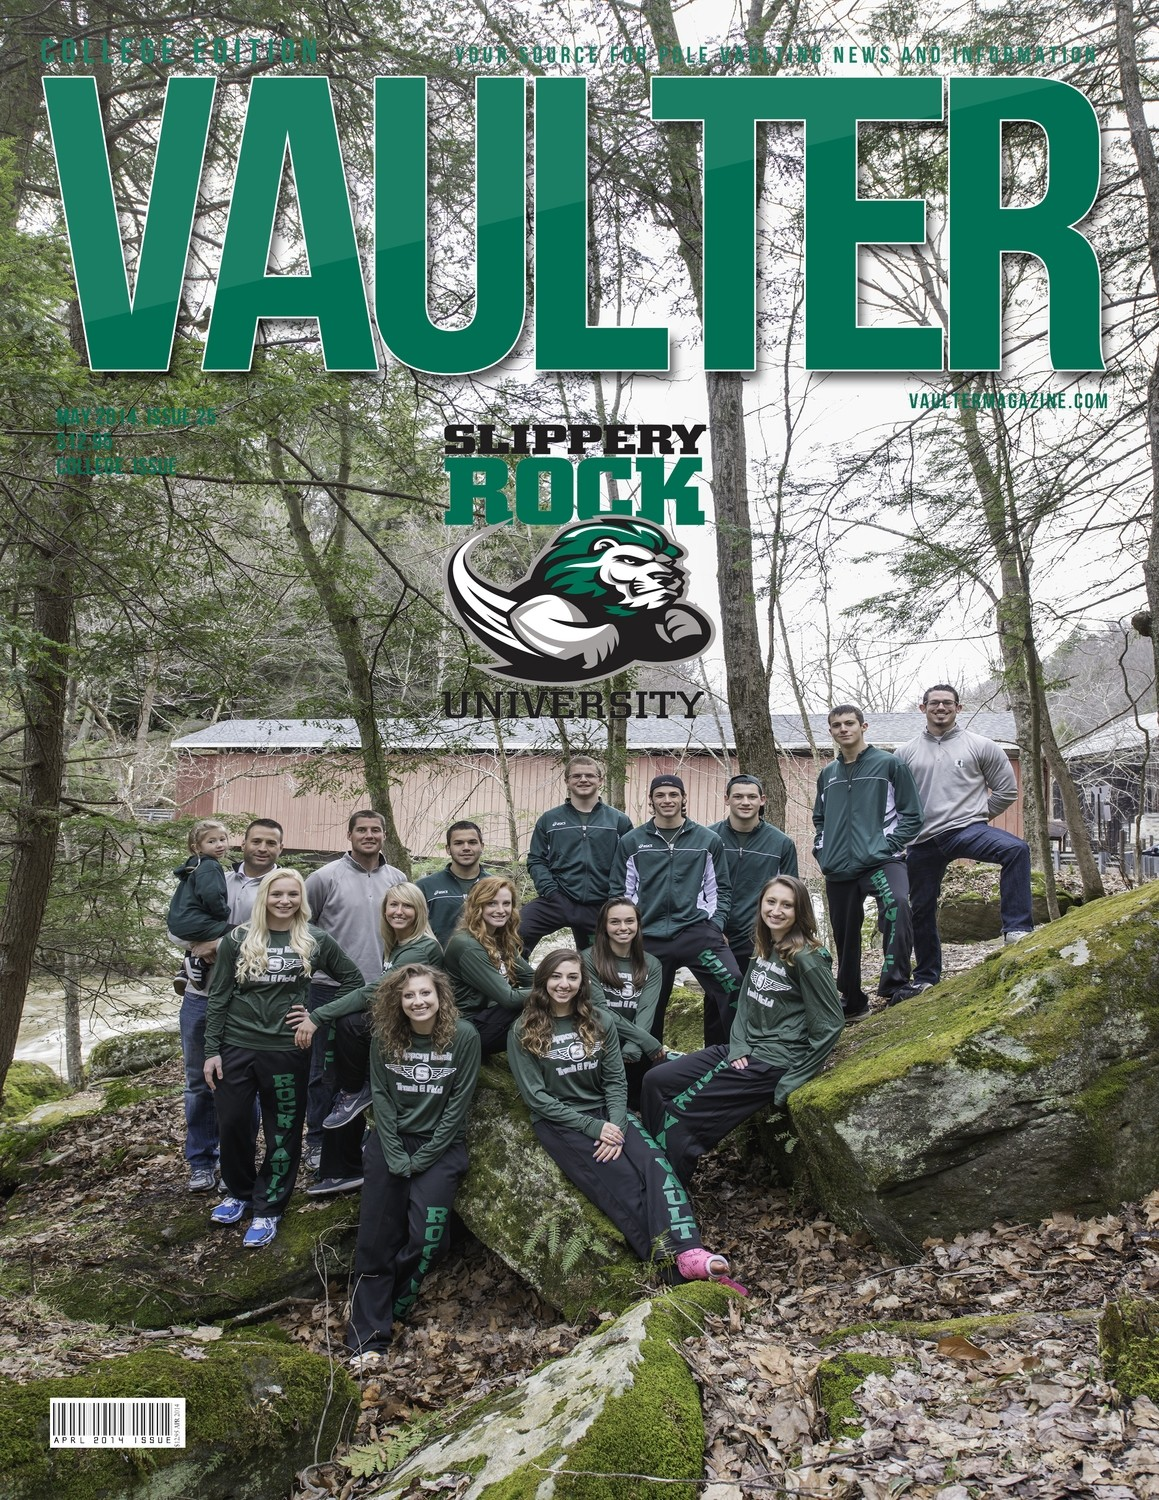 Buy 2 Slippery Rock University Posters get the third one FREE